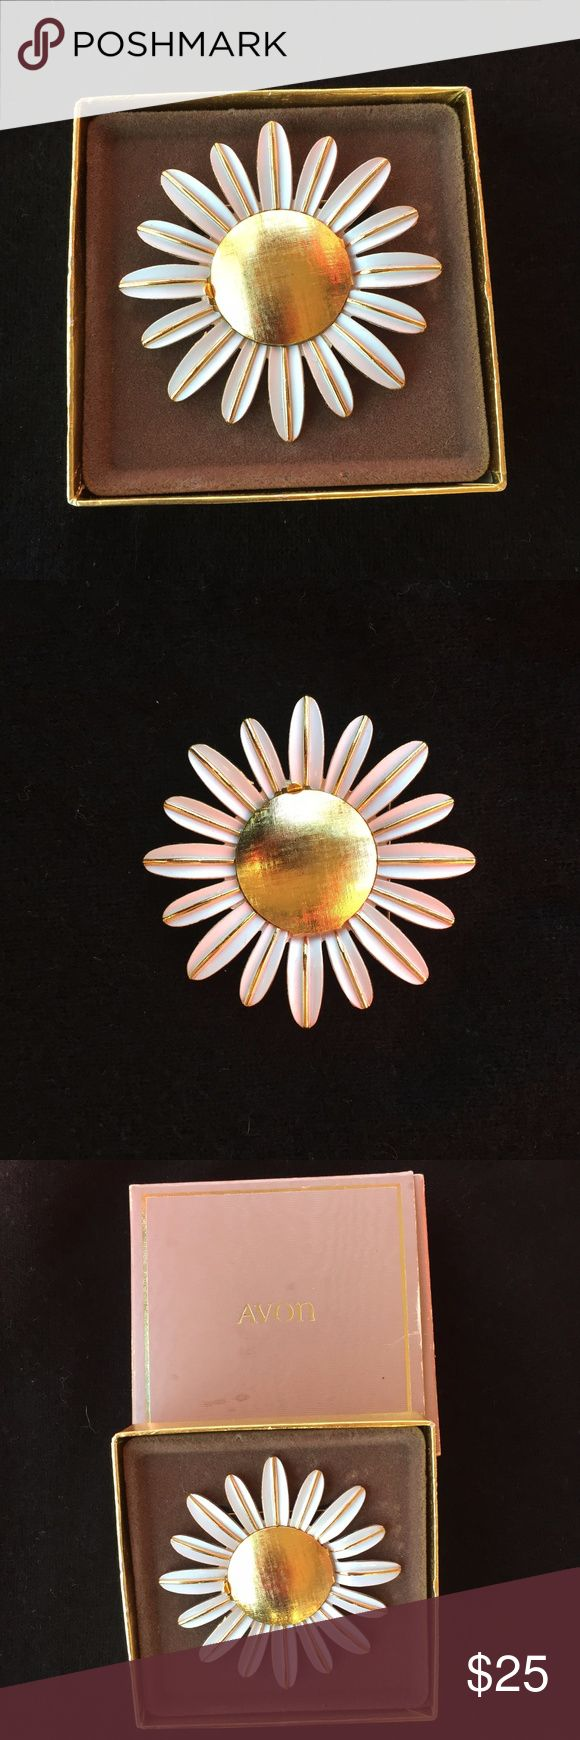 "Vintage Avon Pin *NEW IN BOX* Rare Vintage 1970's AVON Daisy Pin - Perfume Glace.  Box is a bit worn, but pin inside is new and in tact. Approx: 2 1/2"" accross 8"" round. Avon Jewelry Brooches"